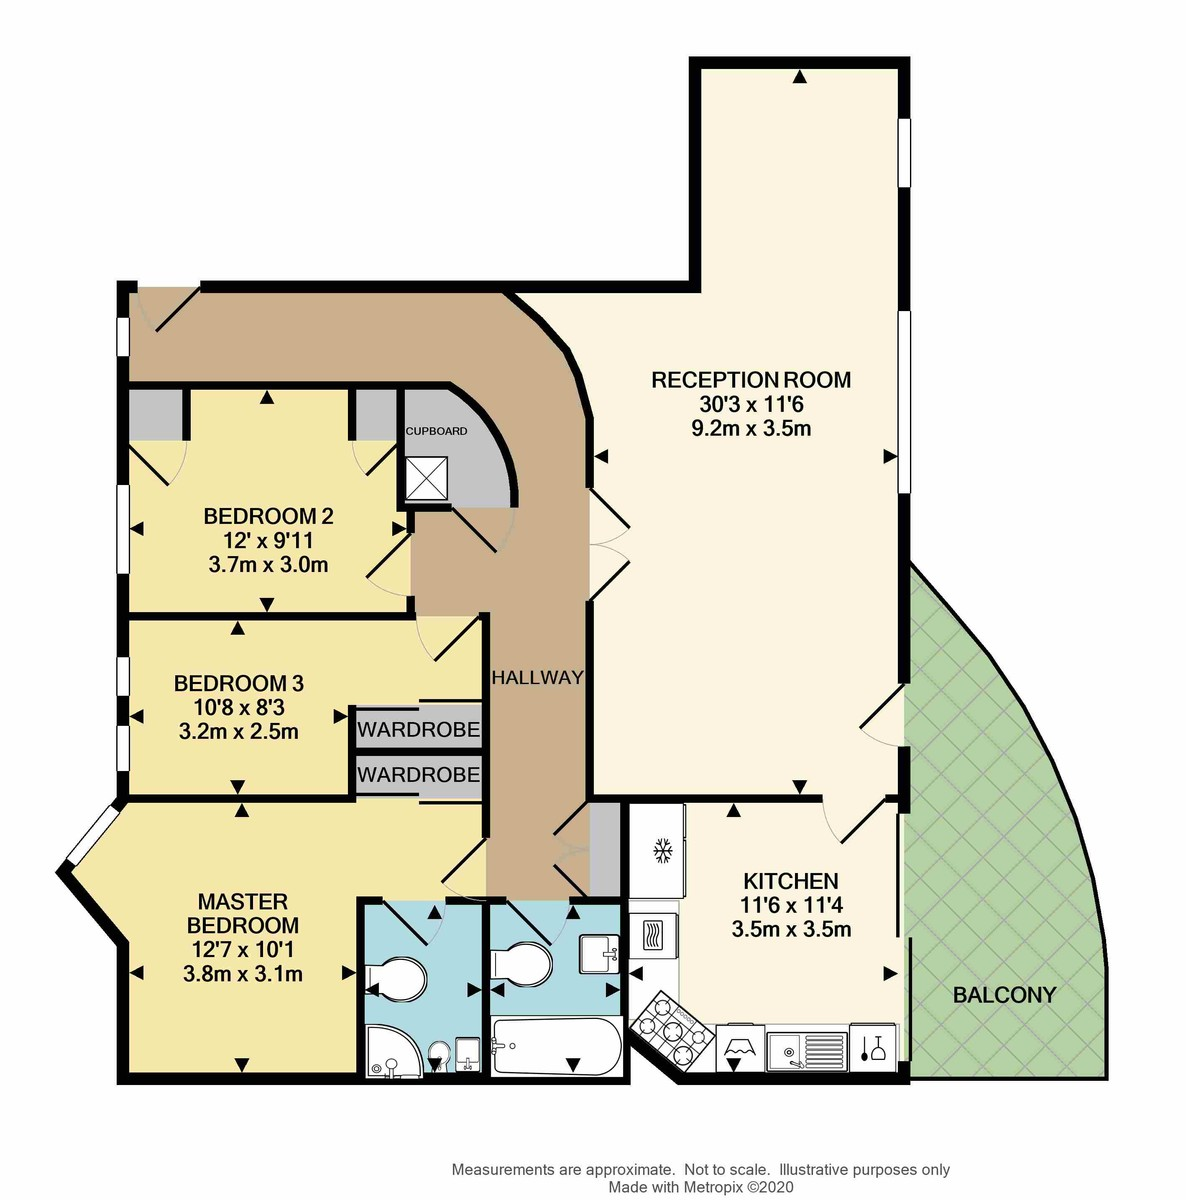 Queen Anne's Quay, 9 Parsonage Way, Plymouth, PL4 0LY floorplan